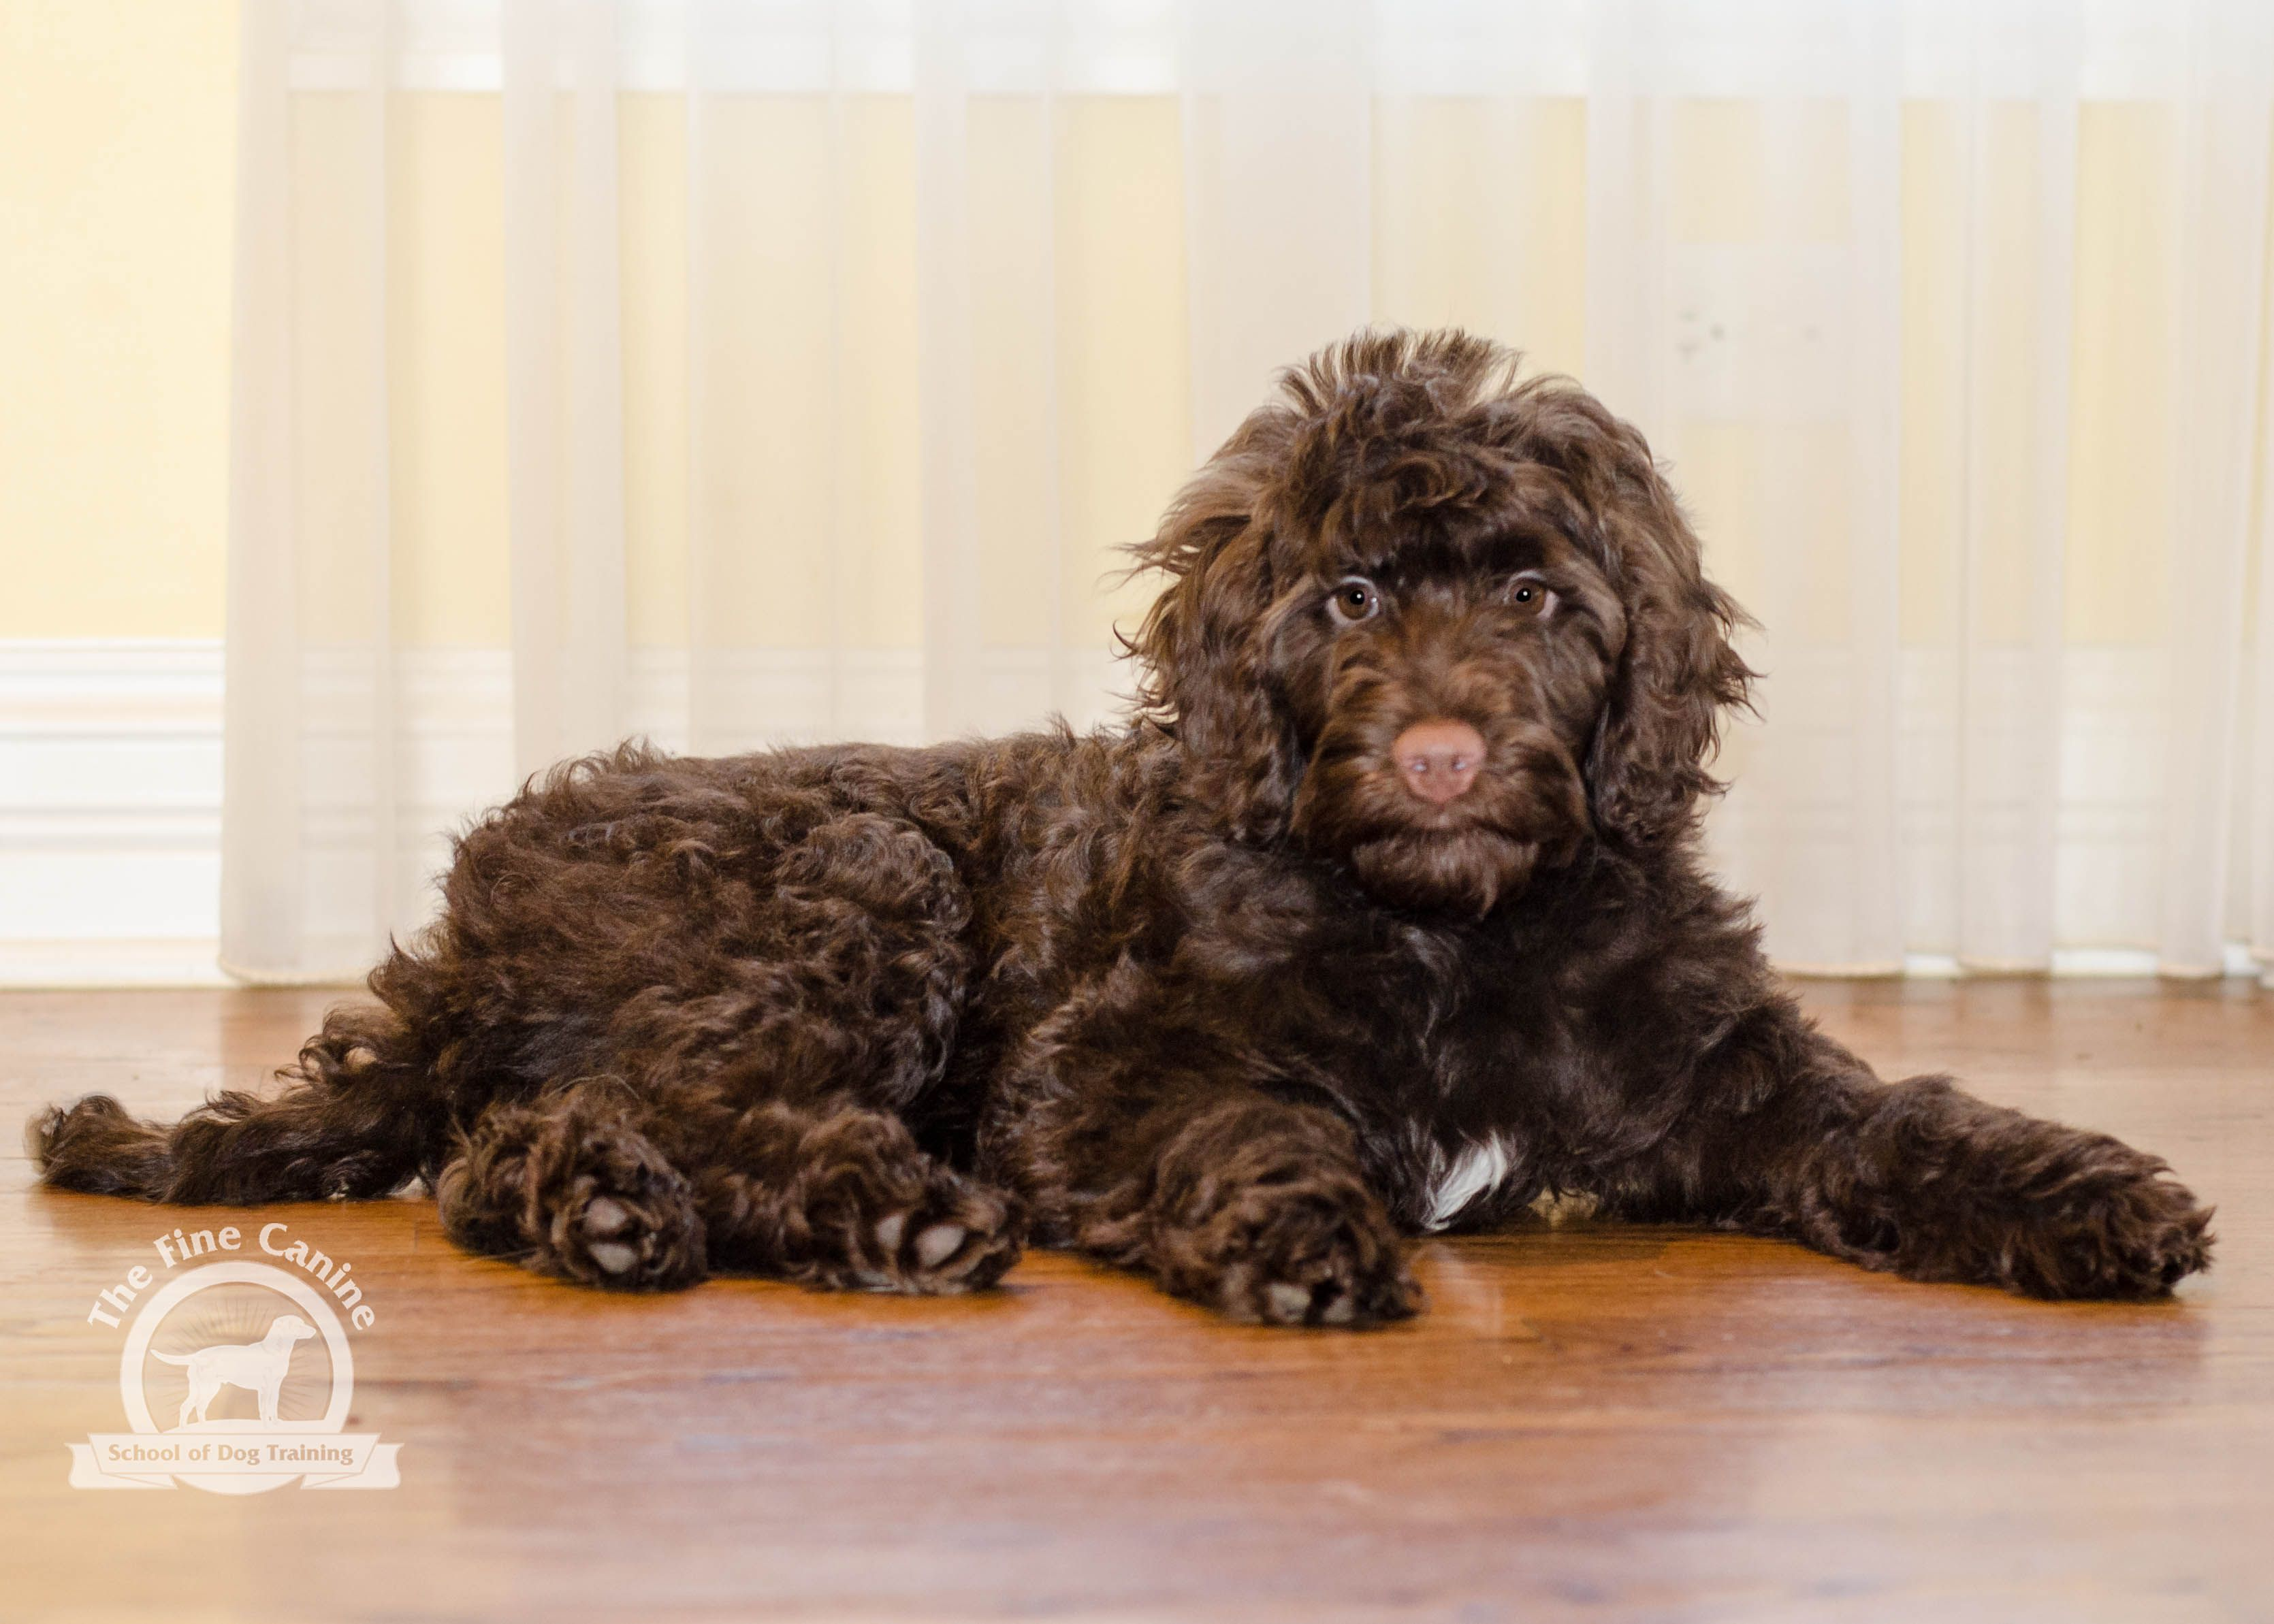 Rossy The 12 Week Old Labradoodle Puppy Labradoodle Puppy Puppies Labradoodle